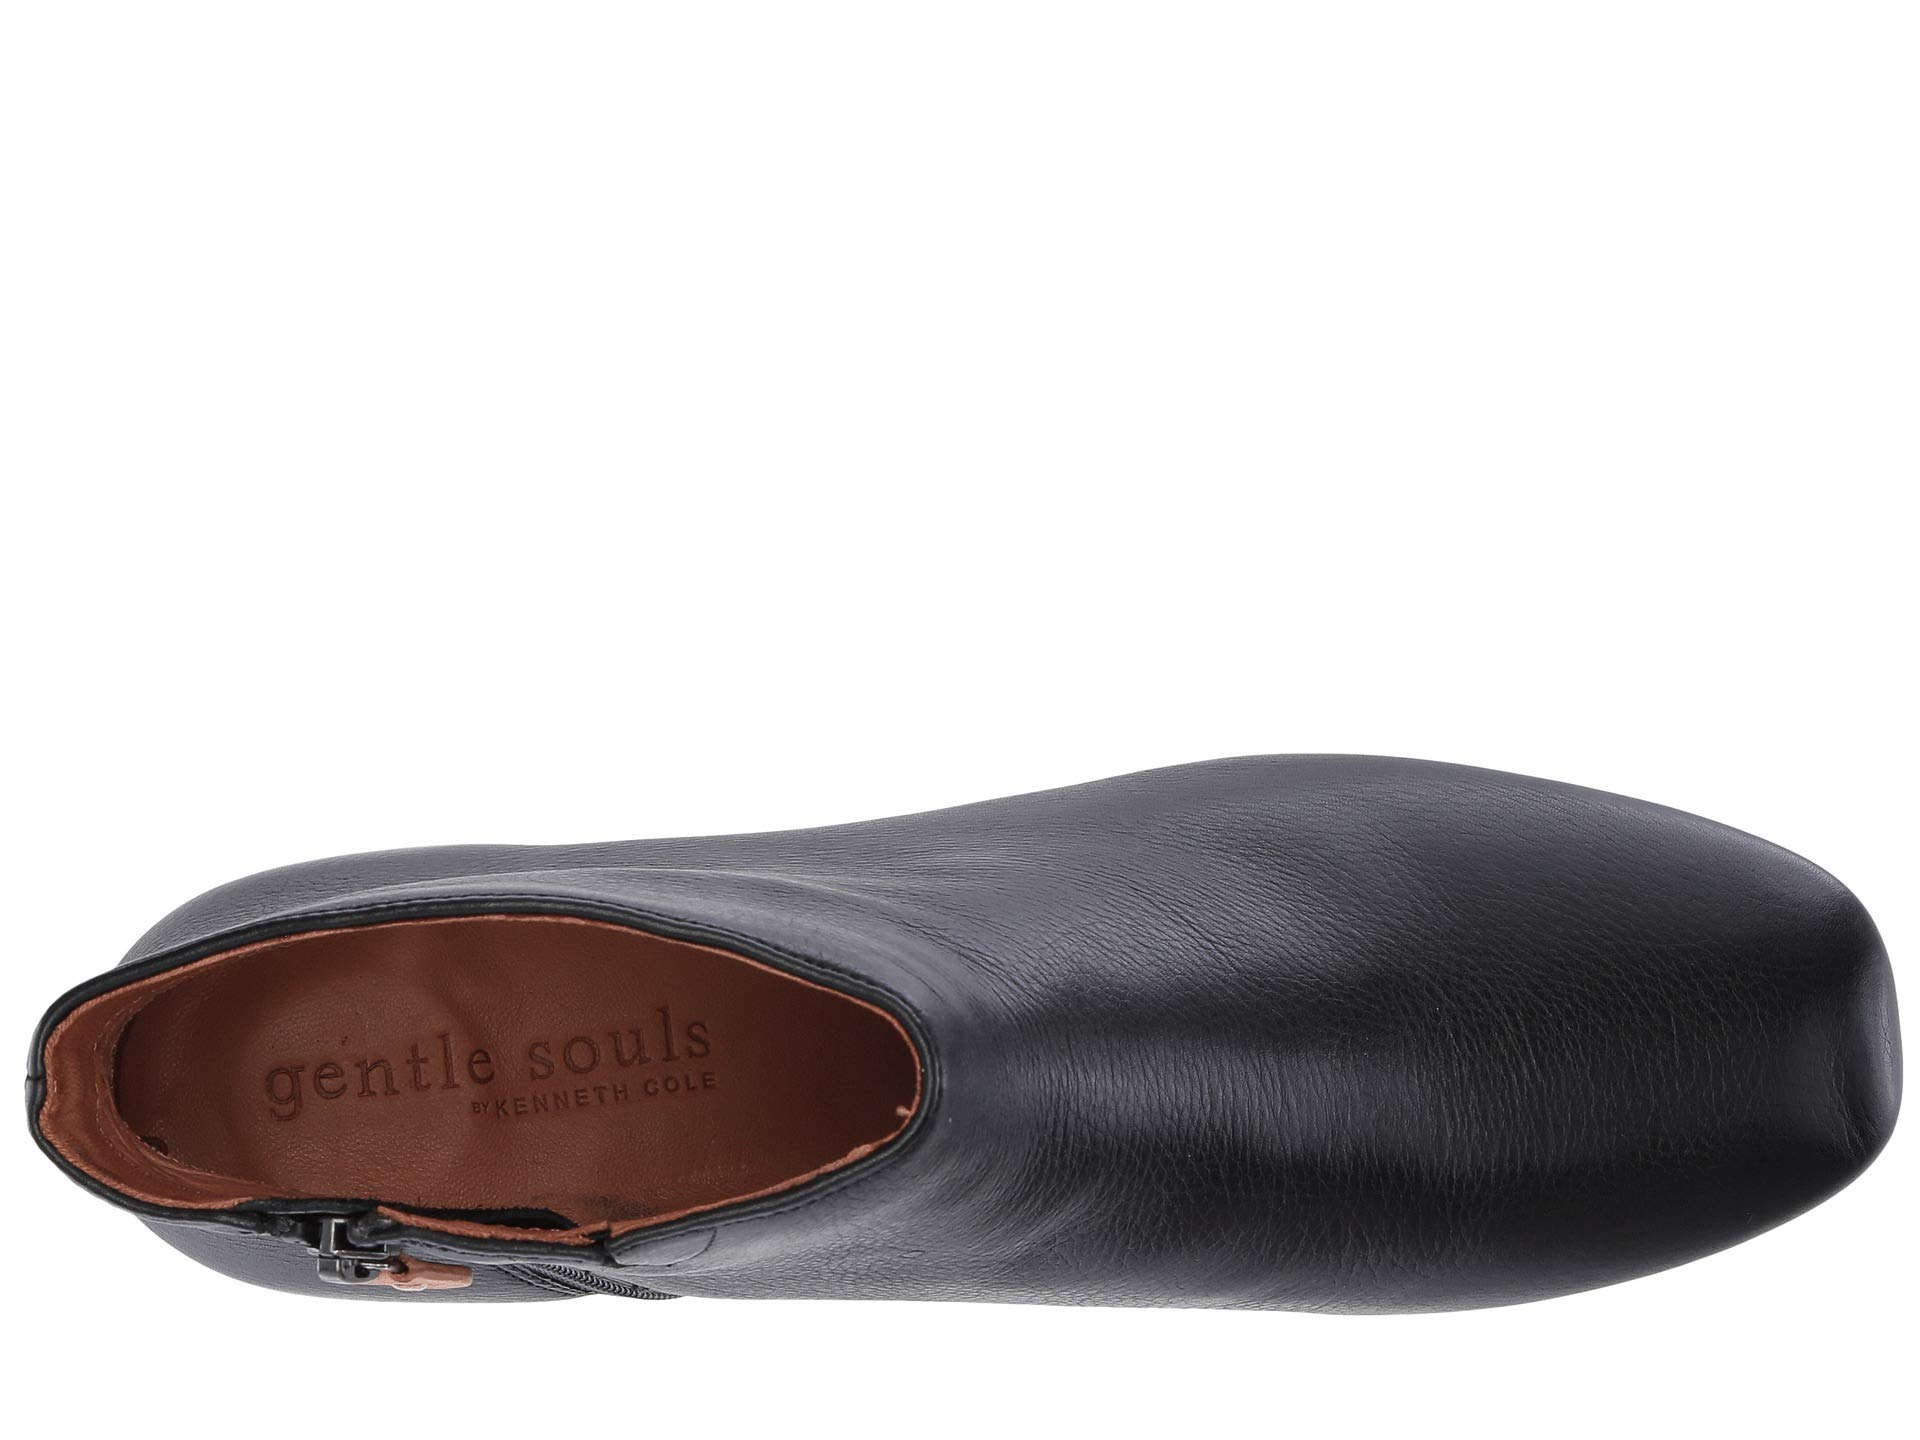 Bootie Cole Ella Souls Black Gentle Kenneth By H7nStIxX